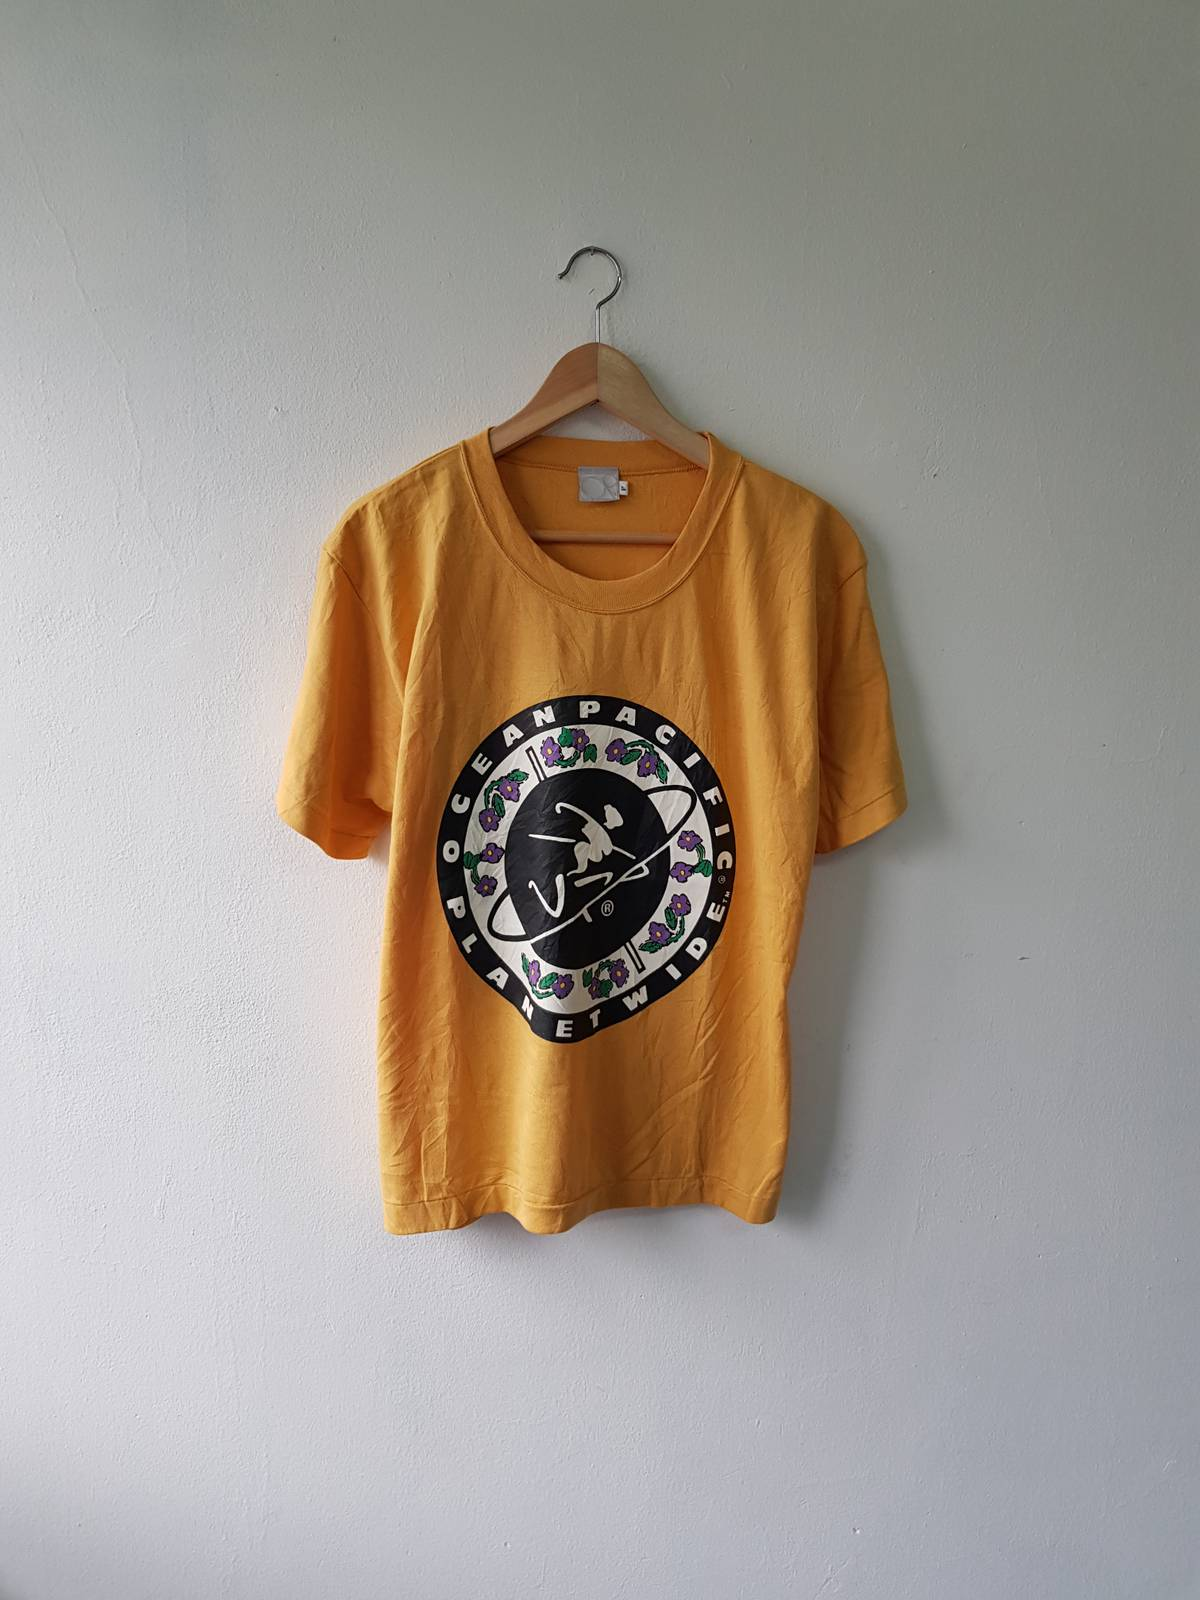 Surf Style × Vintage Rare Vintage 80s Op Ocean Pacific Planet Wide Giant Round Logo Chest Surfing Gear Printed Graphic T Shirt Size F Size M $36